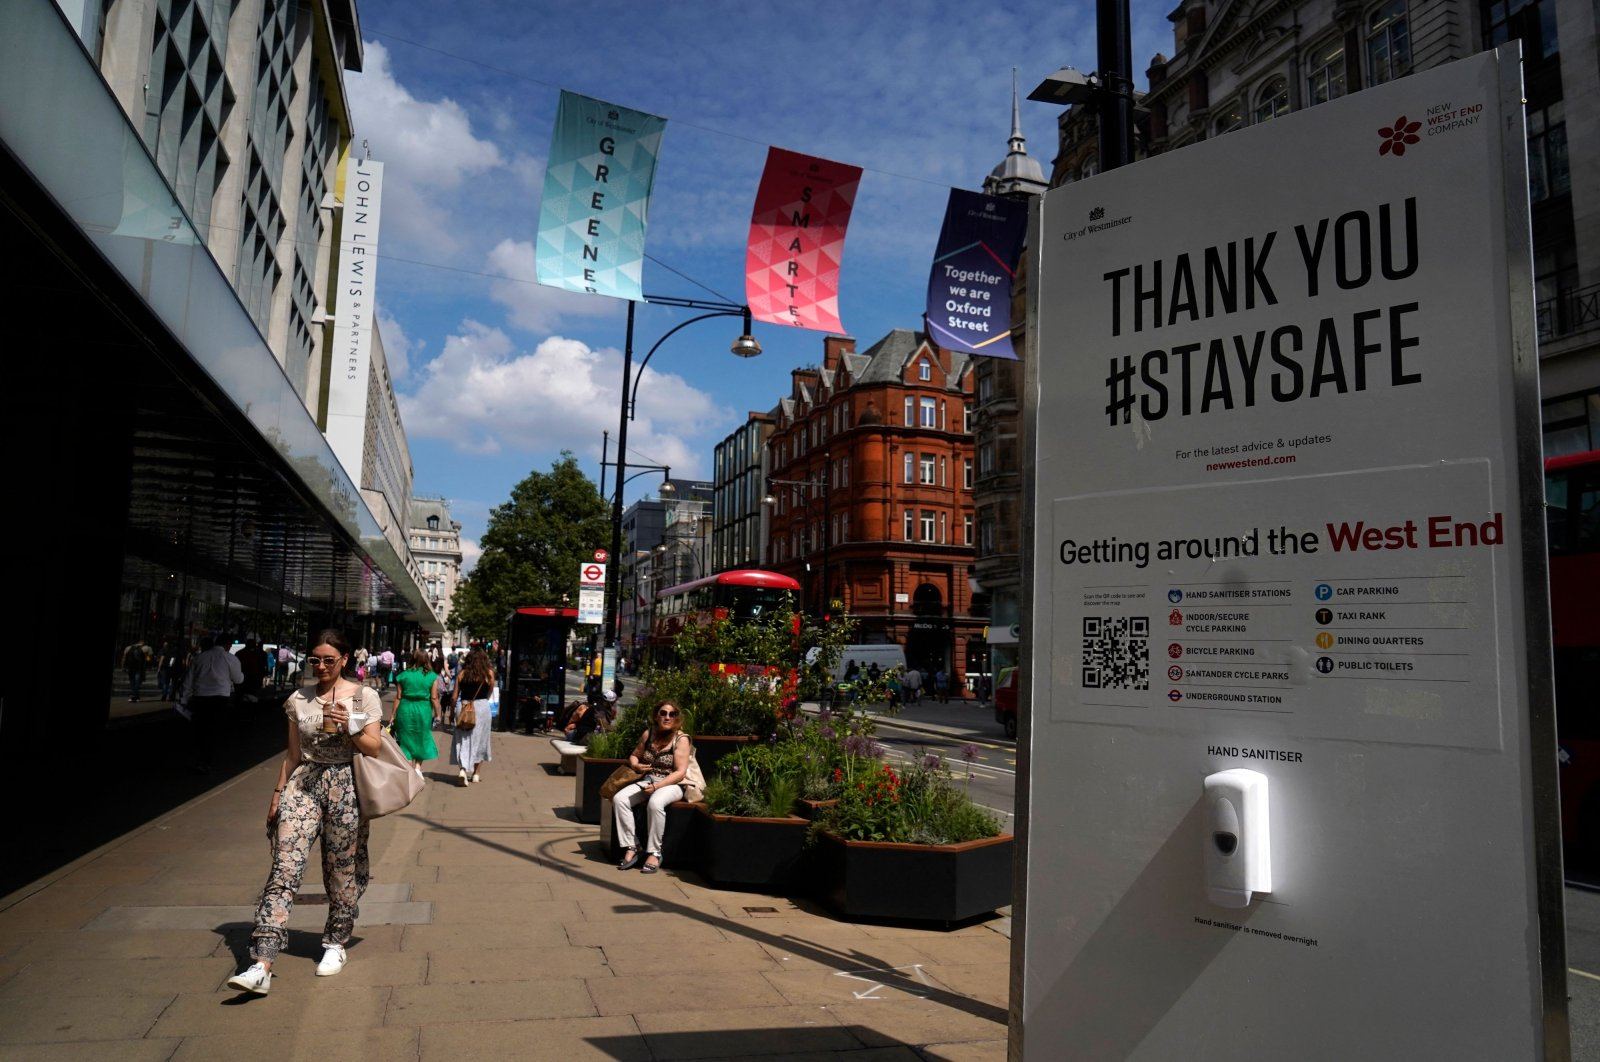 Pedestrians, some wearing face coverings due to COVID-19, walk past a coronavirus information sign as they pass shops on Oxford Street in central London on June 7, 2021. (AFP Photo)